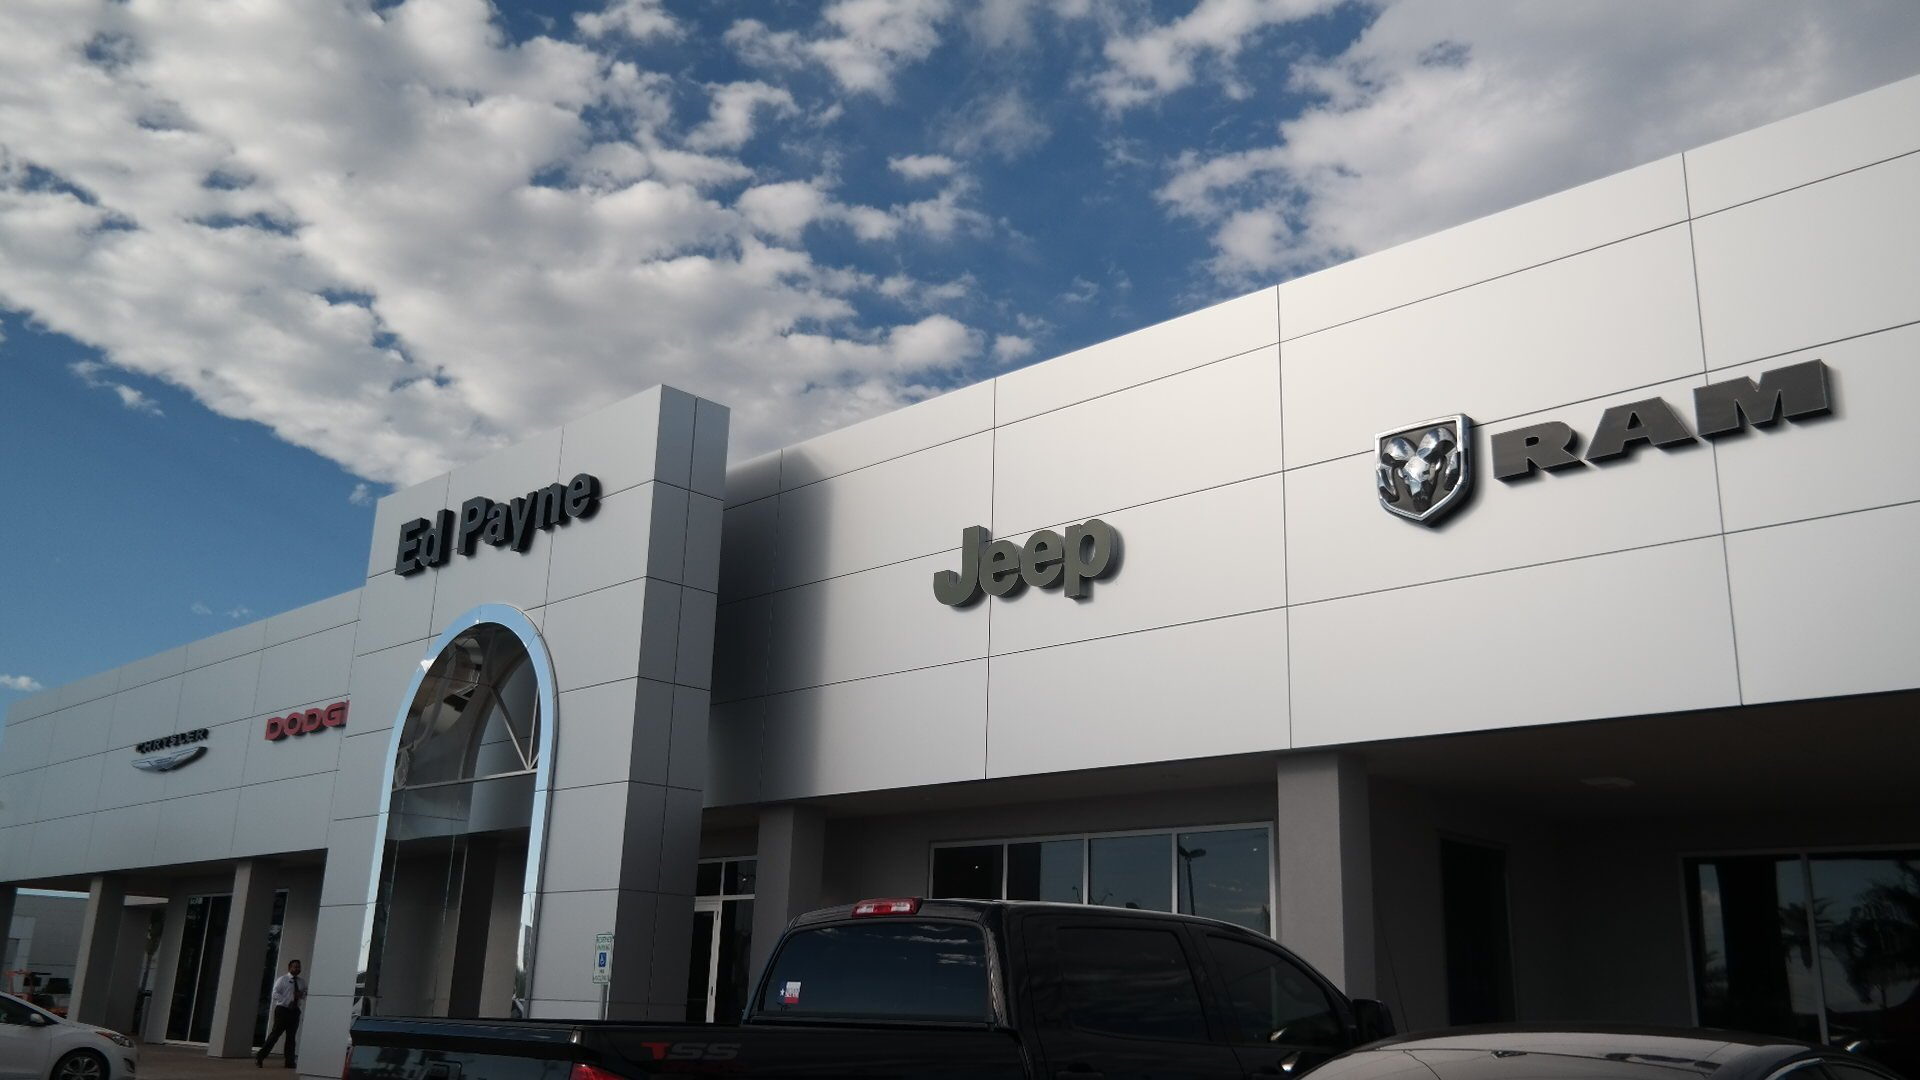 Ed Payne Chrysler Dodge Jeep RAM